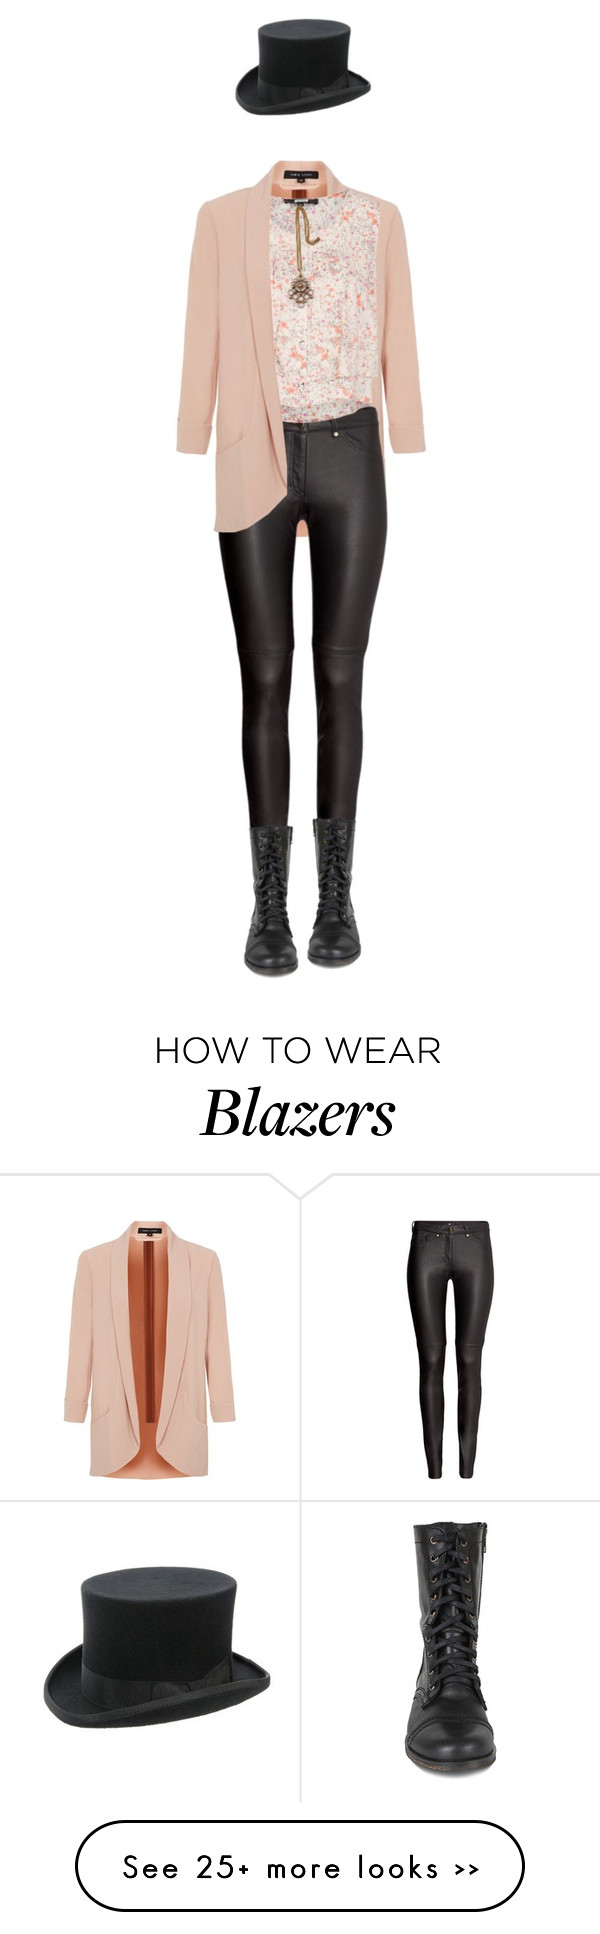 """""""OOTD"""" by ladomna on Polyvore"""